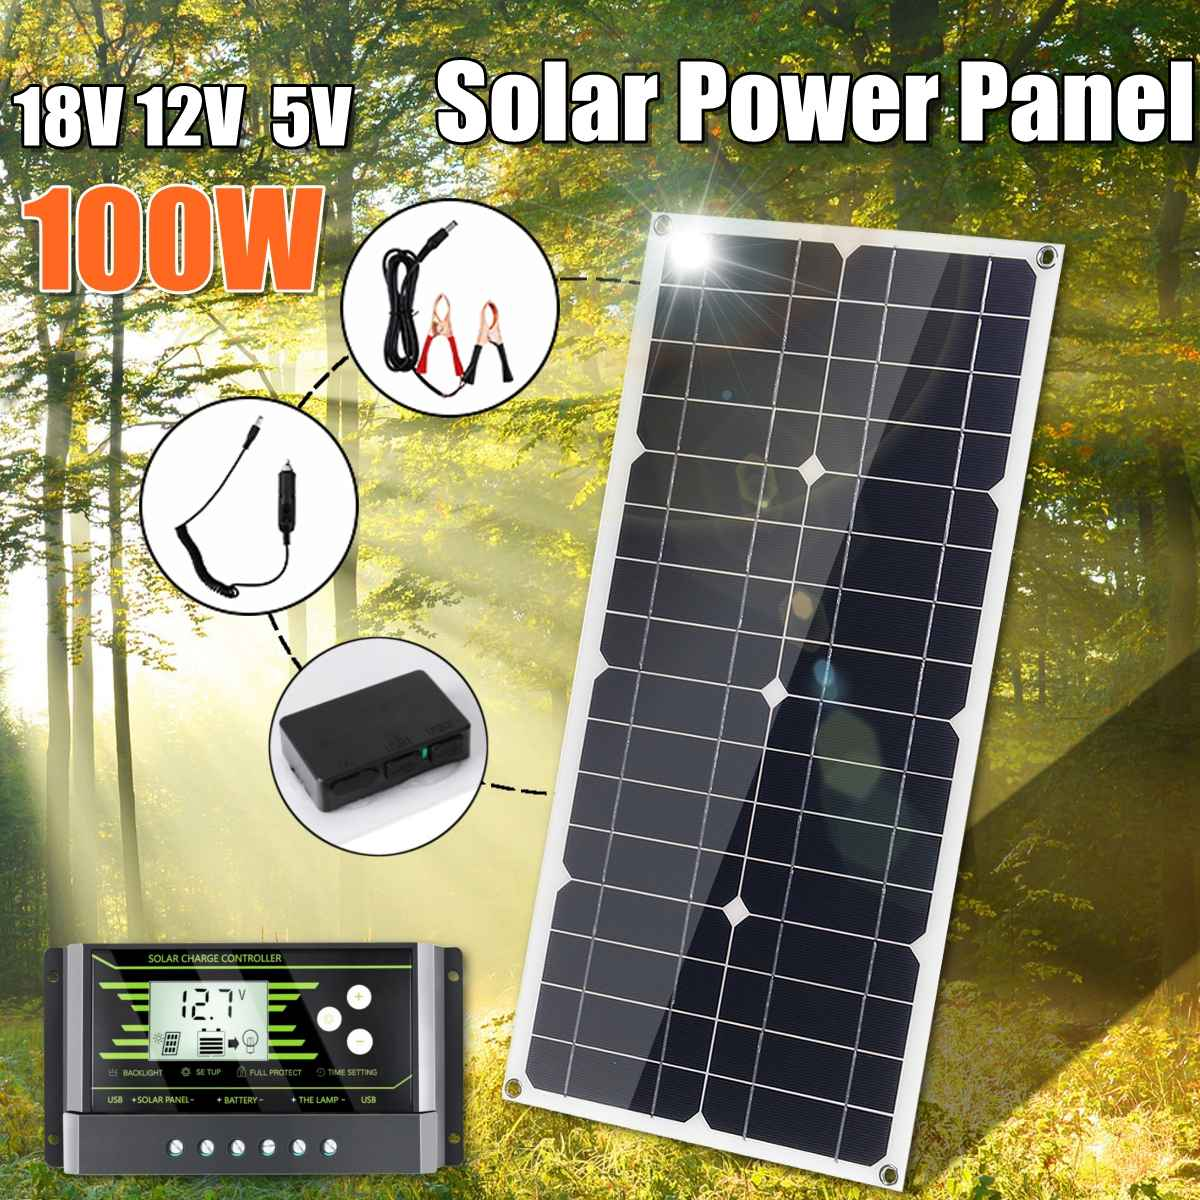 <font><b>Solar</b></font> <font><b>Panel</b></font> <font><b>100w</b></font> 18V <font><b>12V</b></font> Light weight <font><b>Solar</b></font> <font><b>Panel</b></font> Mono crystalline cells <font><b>solar</b></font> battery charger With `10/20/30A Controller image